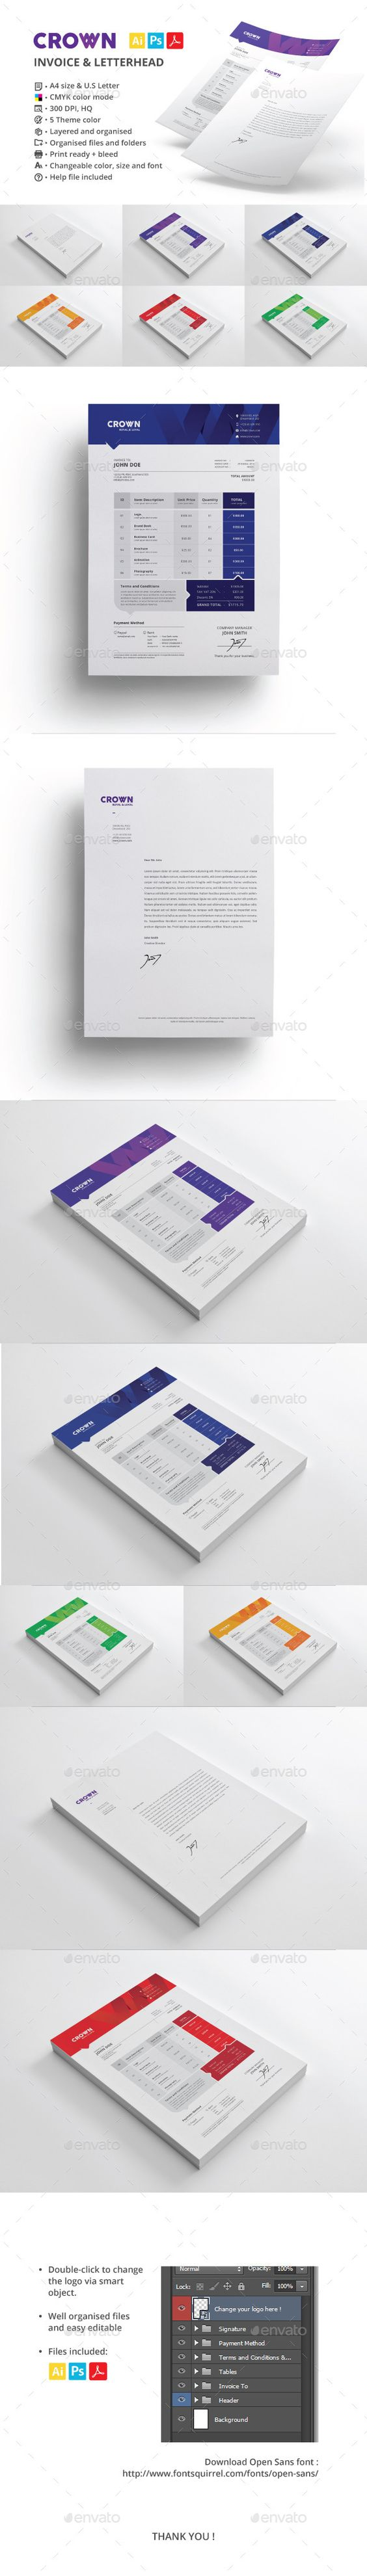 Crown Invoice & Letterhead Template | #invoice #invoicetemplate #invoicedesign | Download: http://graphicriver.net/item/crown-invoice-letterhead/9376993?ref=ksioks